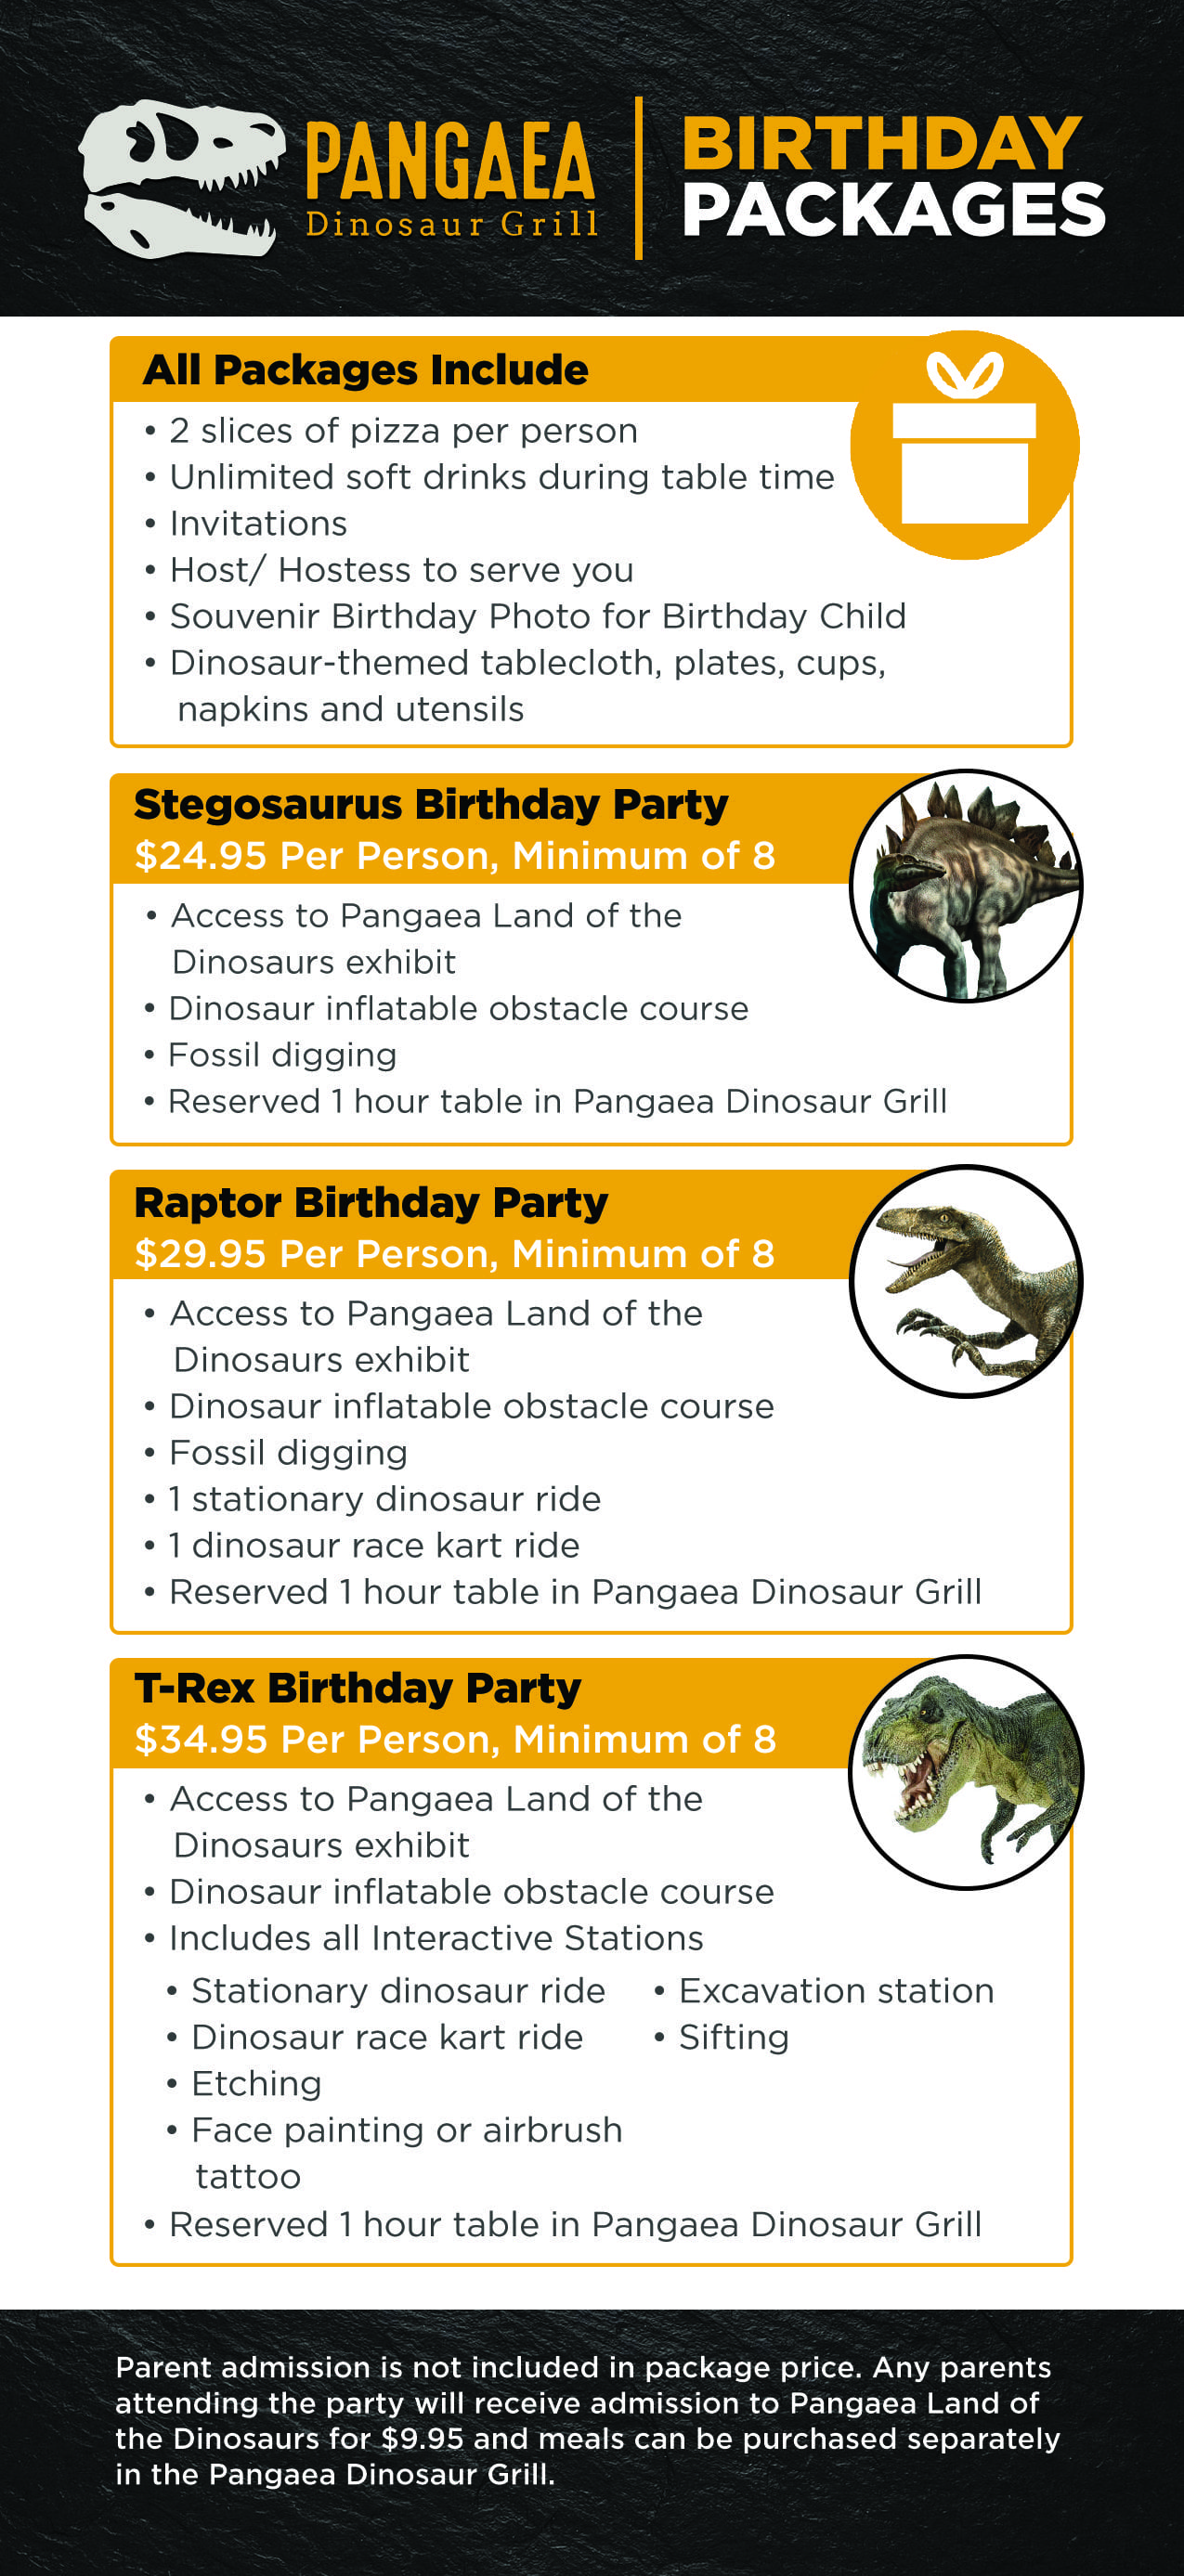 Pangaea Birthday Packages